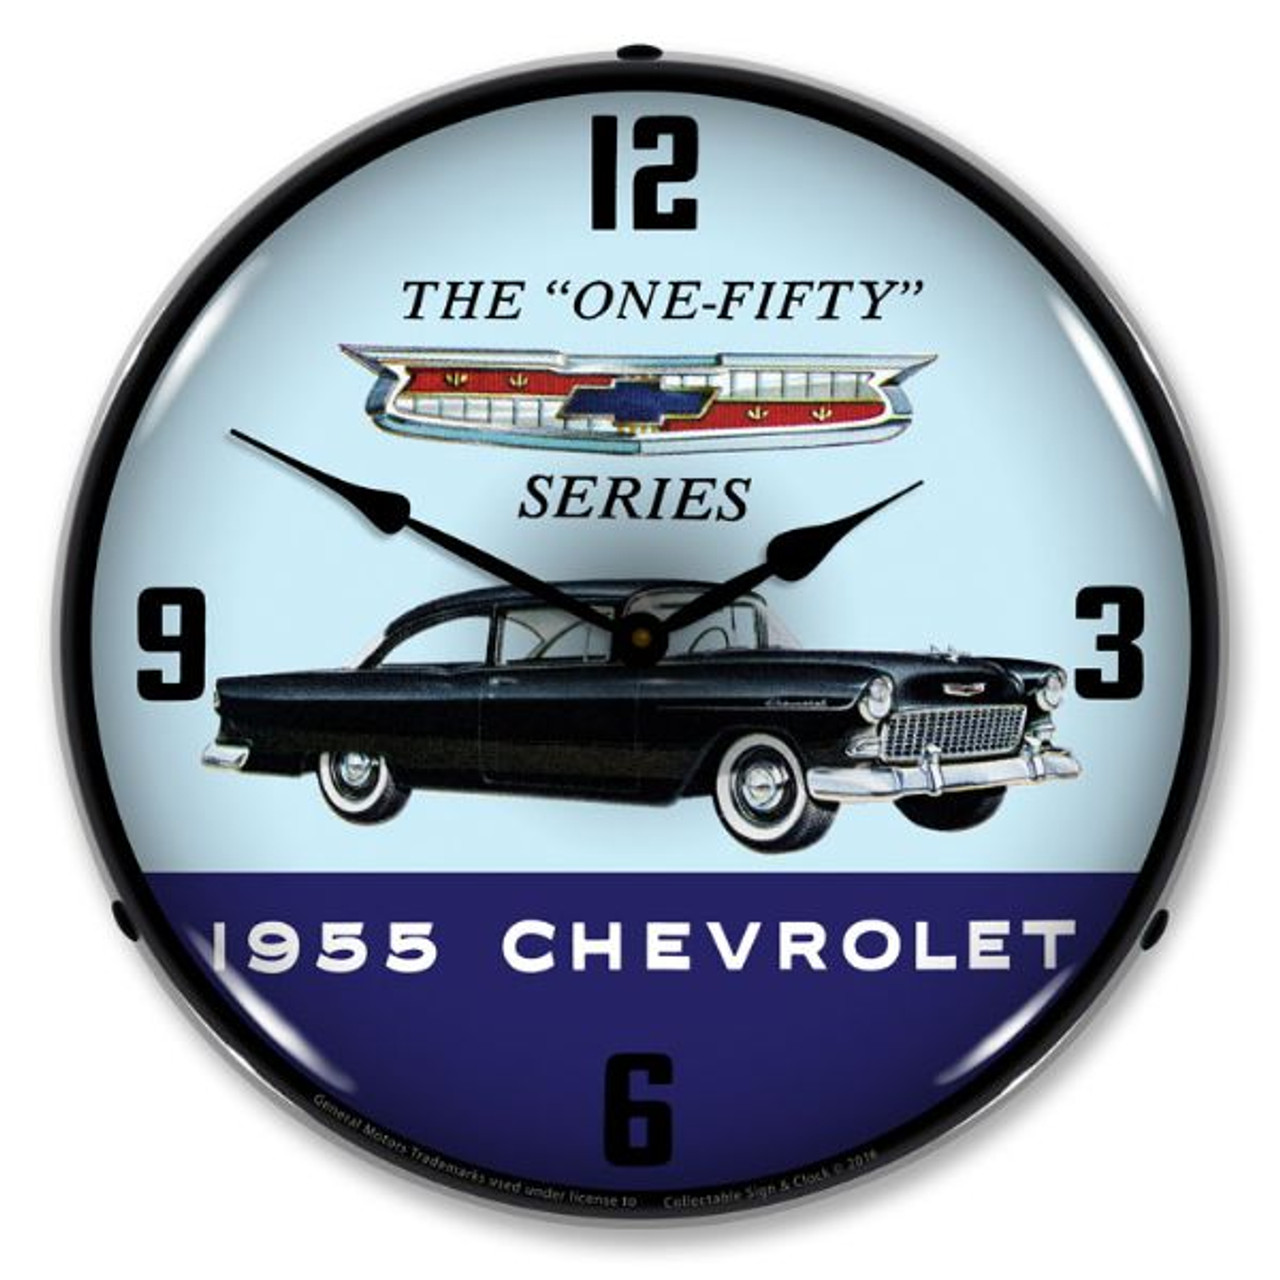 1955 Chevrolet One Fifty Lighted Wall Clock 14 x 14 Inches